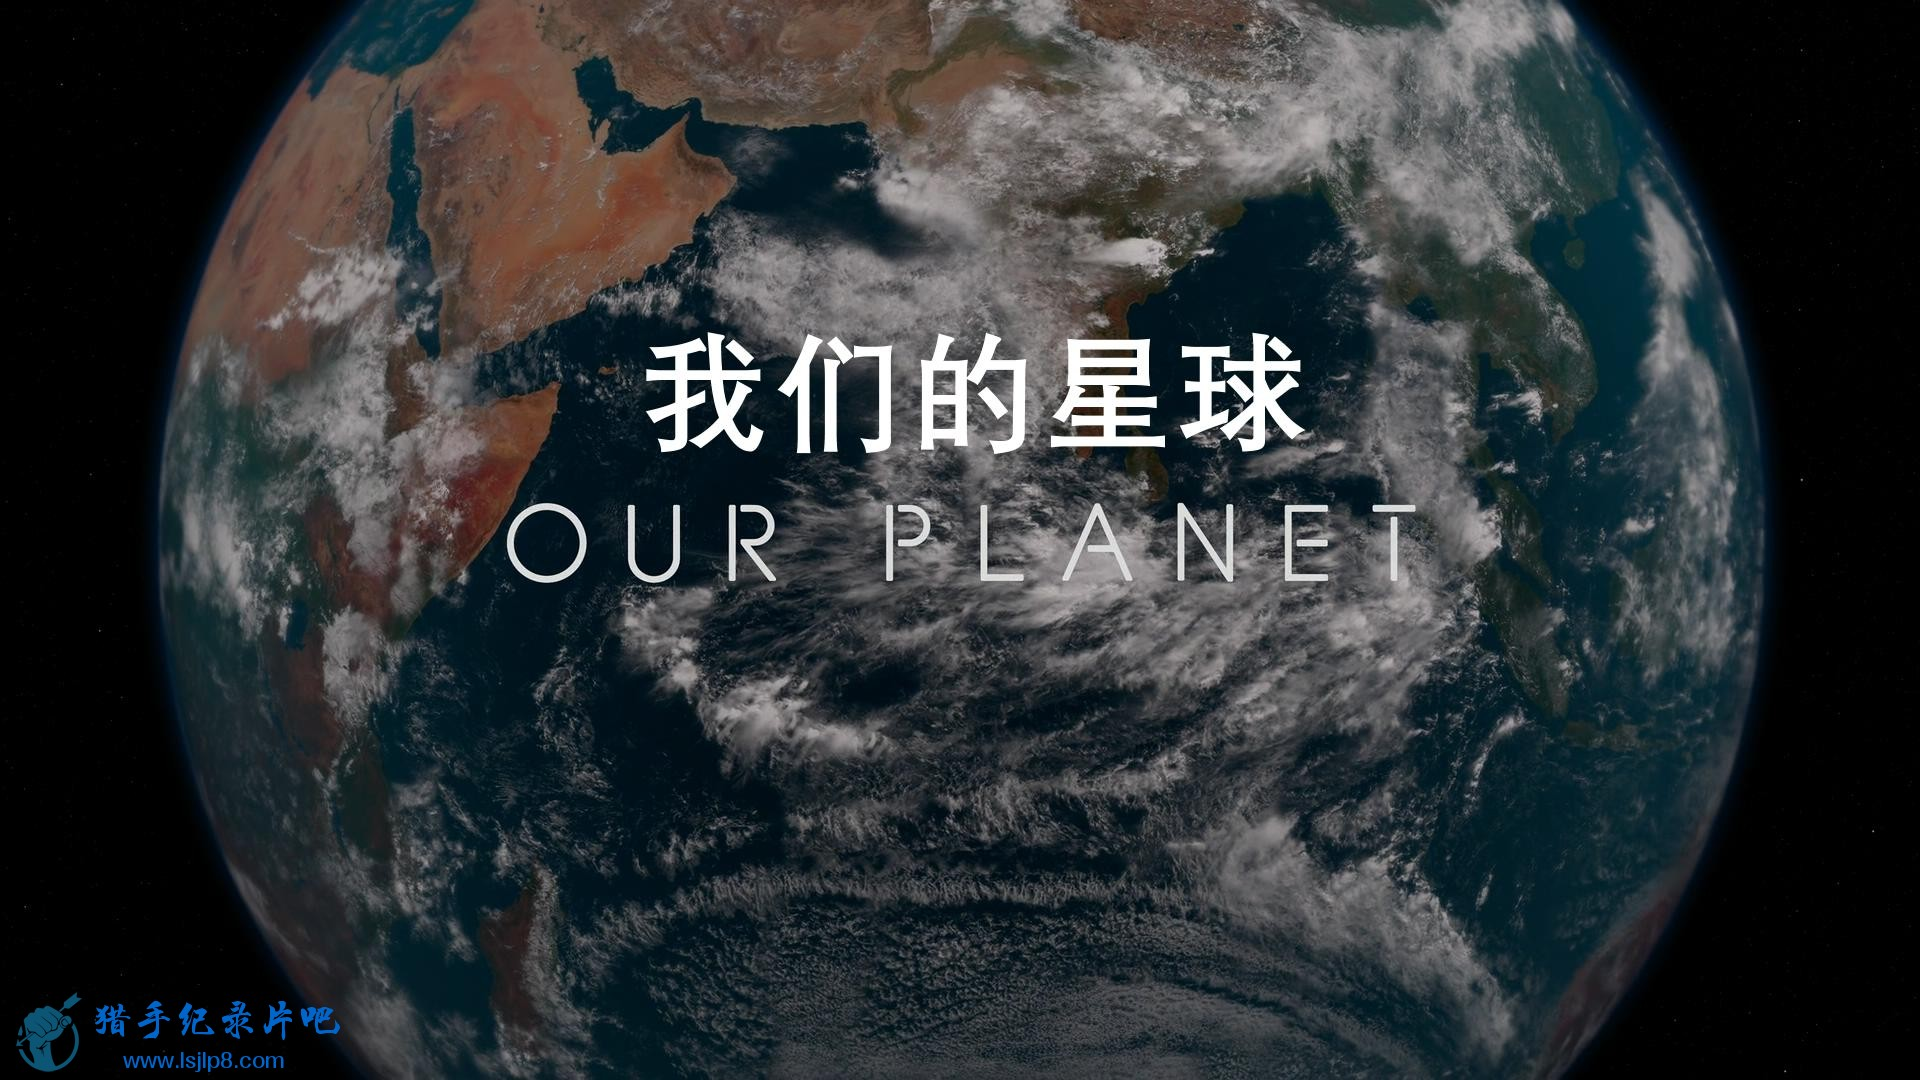 Our.Planet.2019.S01E01.One.Planet.1080p.NF.WEBRip.DDP5.1.x264-NTb_20190825154928.JPG